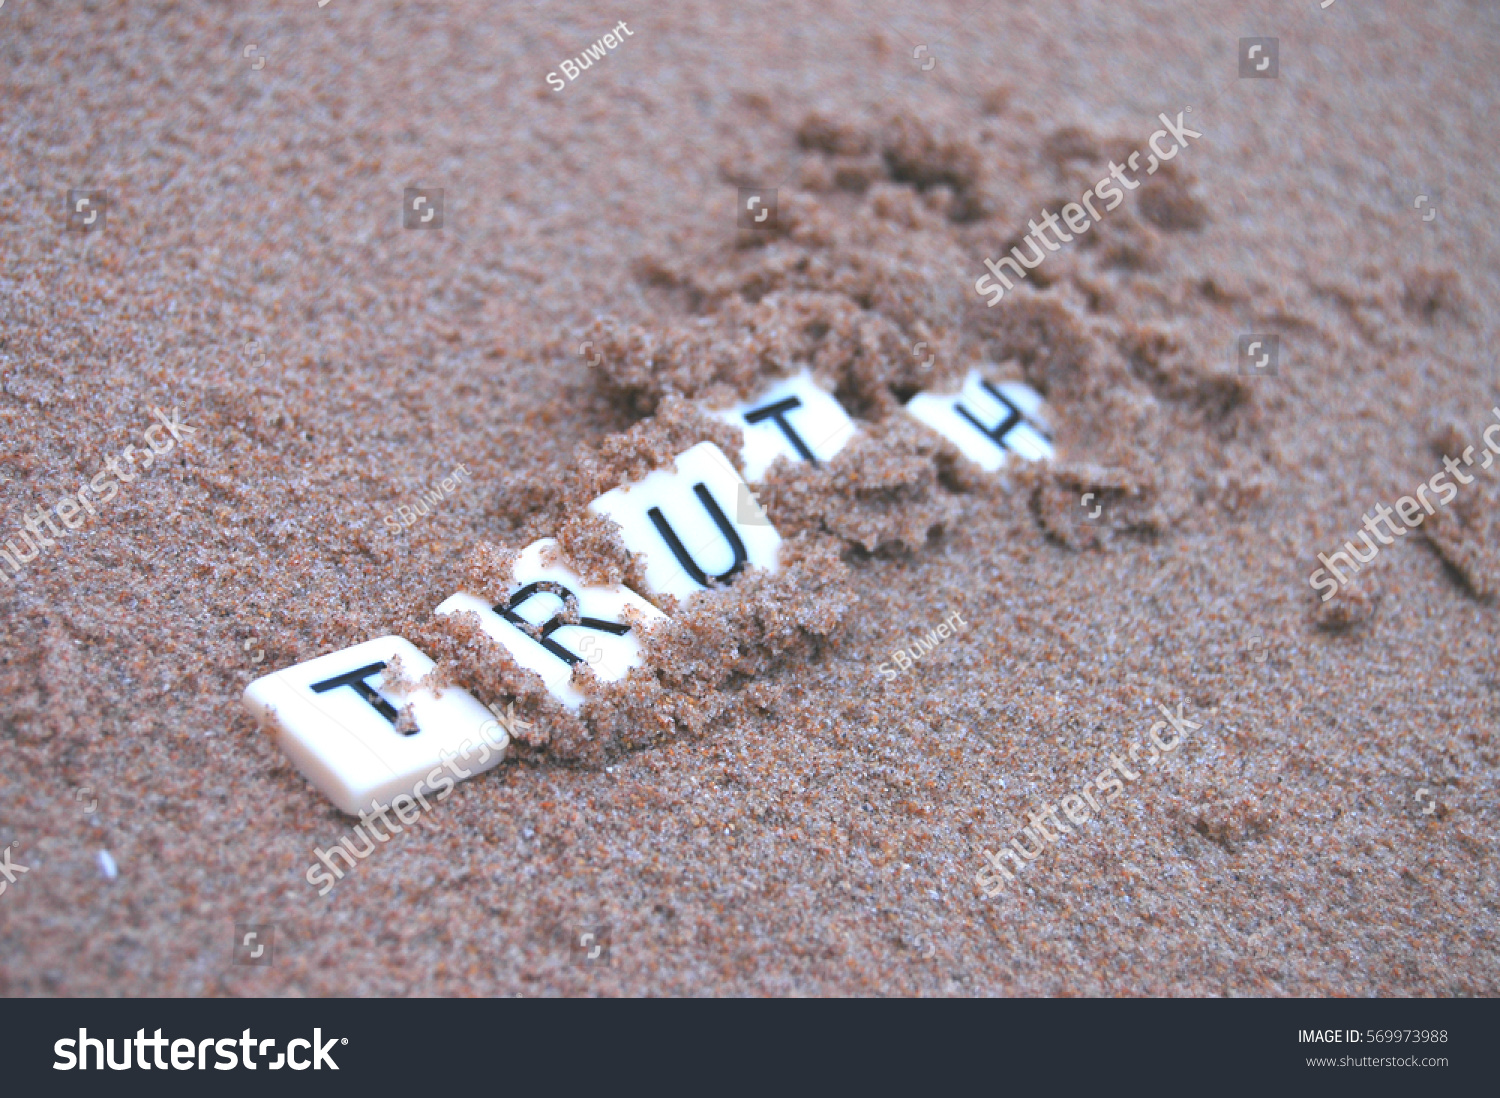 stock-photo-post-truth-letters-spelling-truth-becoming-buried-in-sand-569973988.jpg